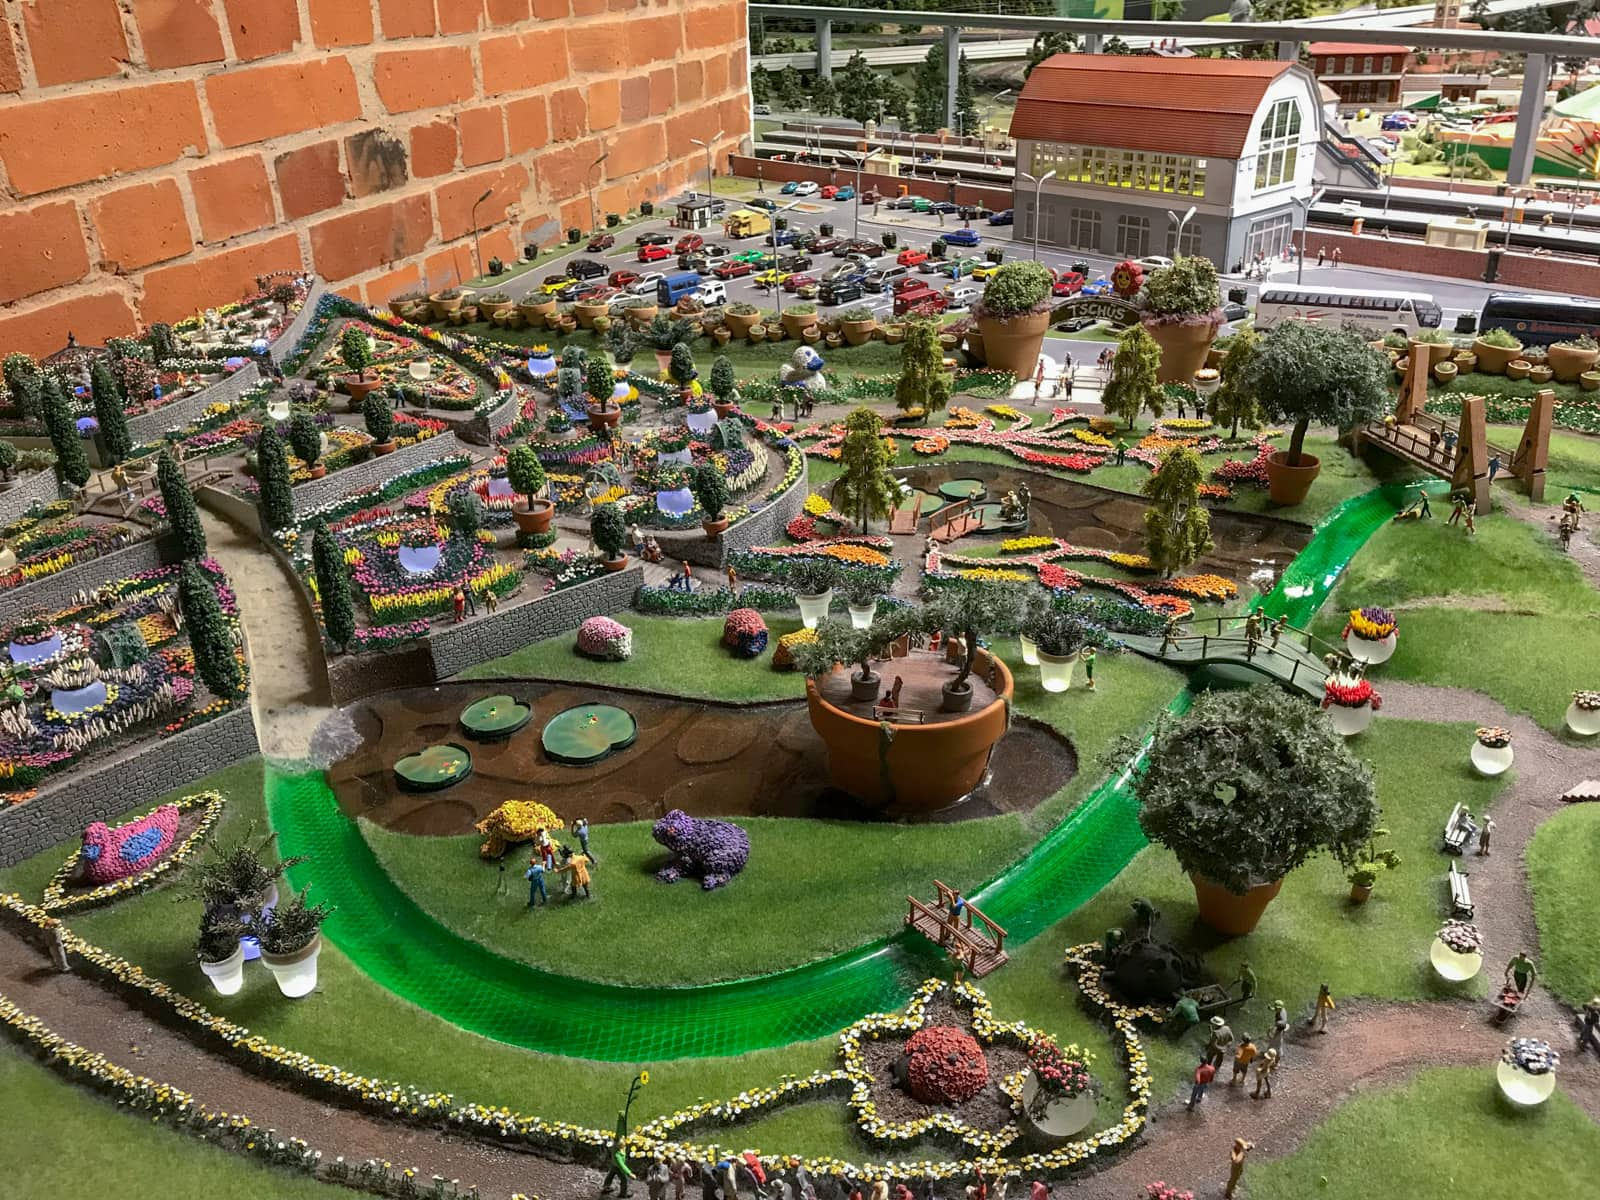 Another miniature replica of a garden with green lawns and tiny colourful plants